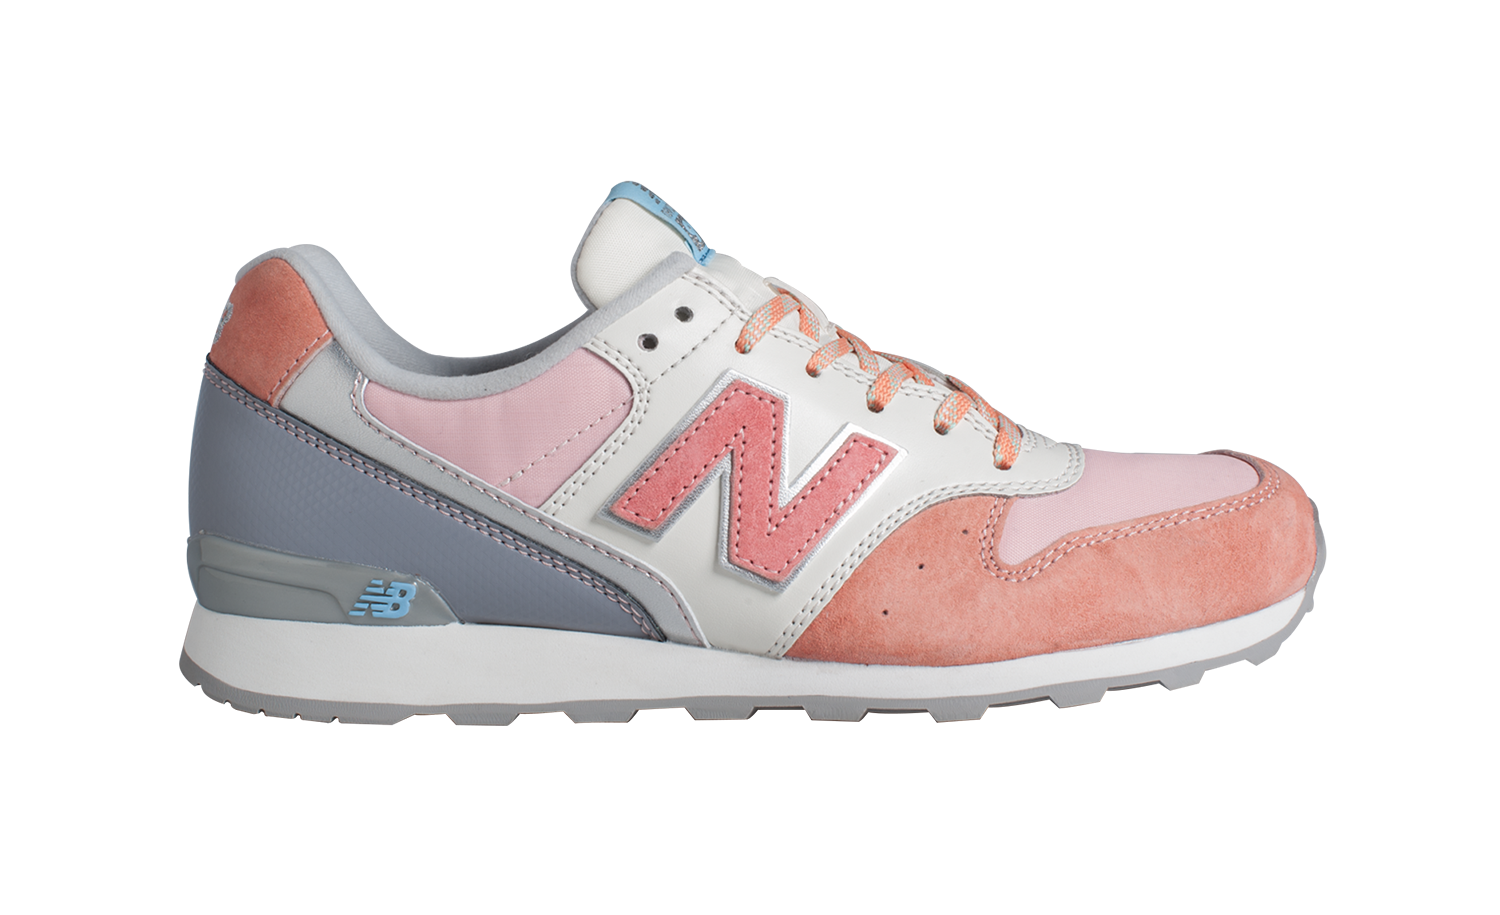 New Balance 996 Patchwork